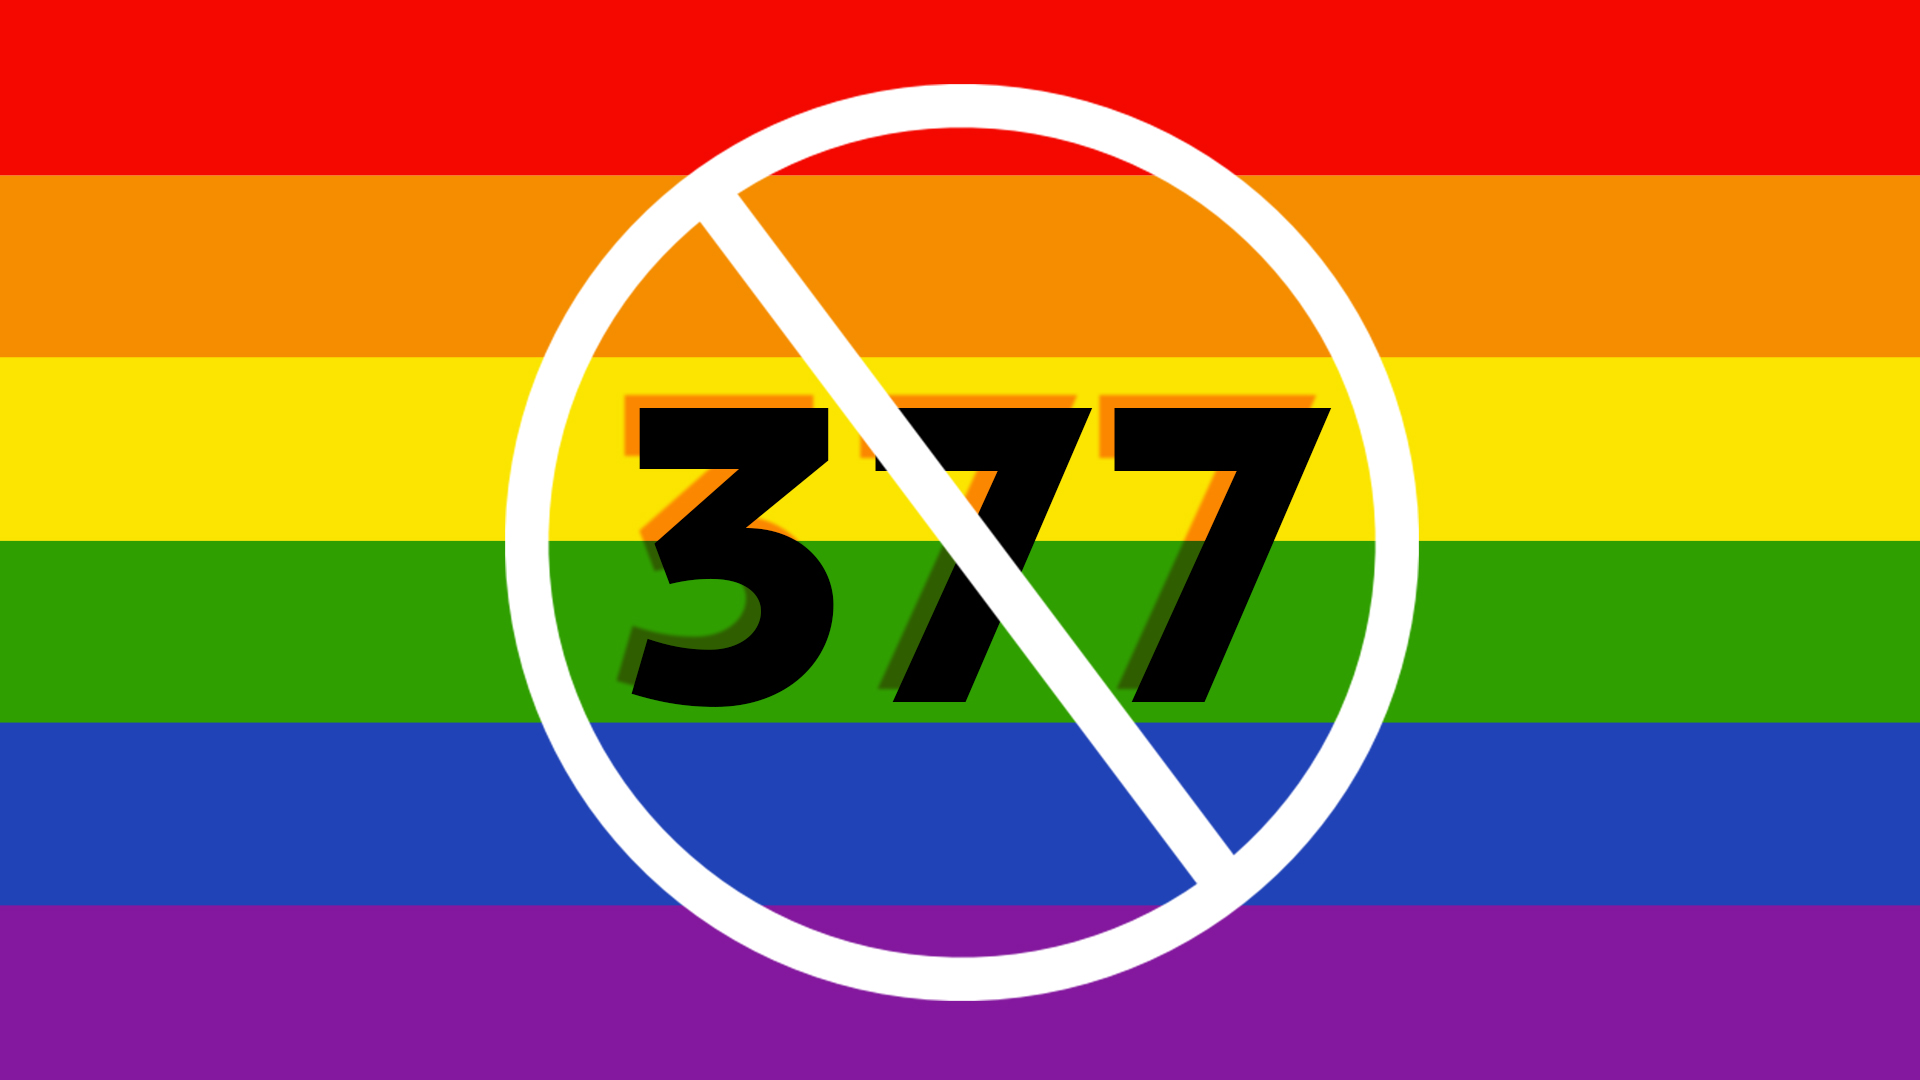 377 Verdict: End to a heteronormative thinking.